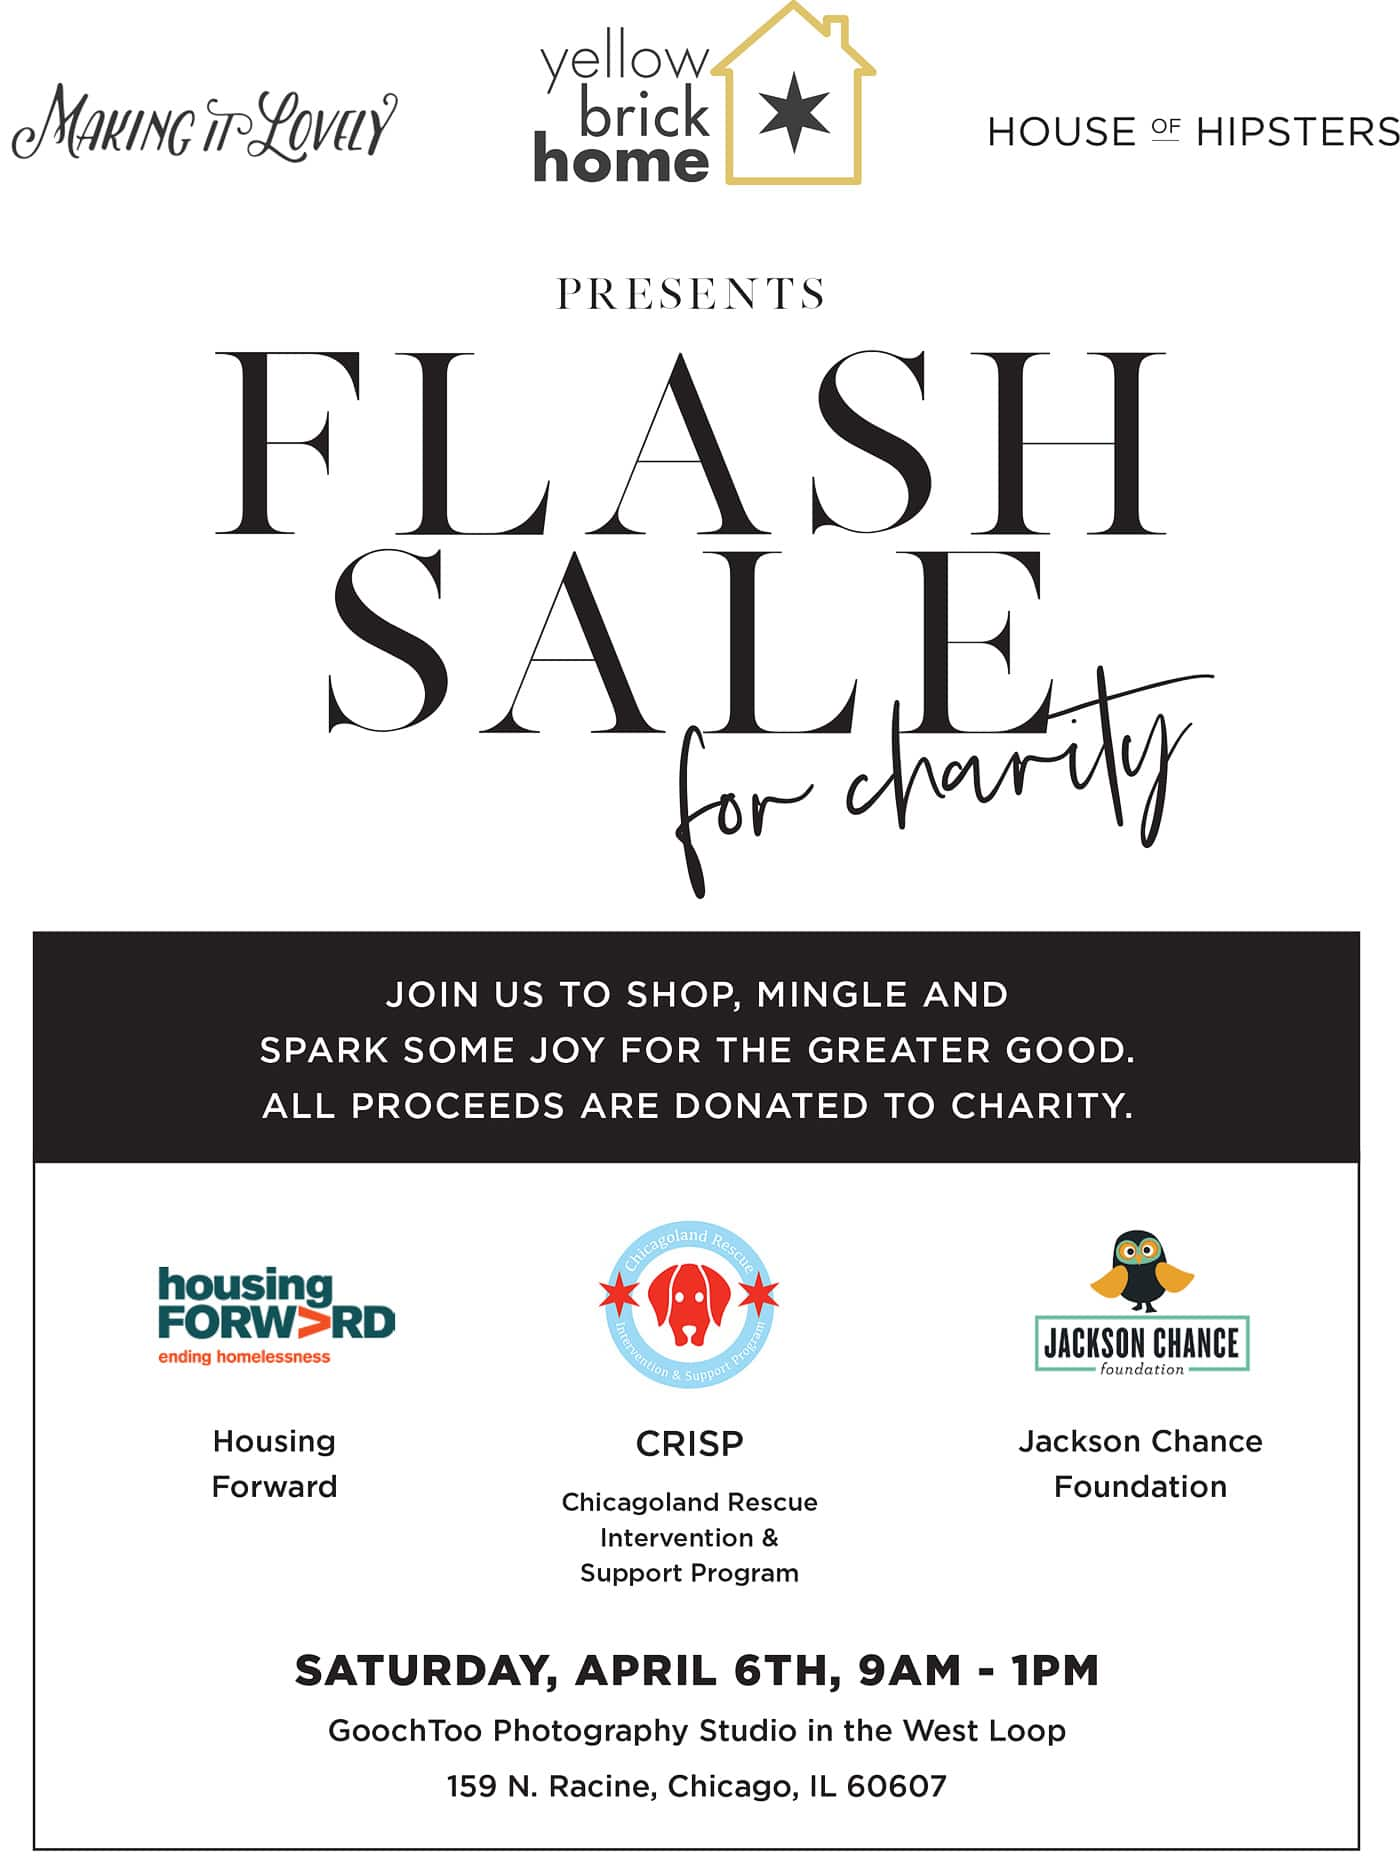 A Flash Sale for charity via Yellow Brick Home | save the date!